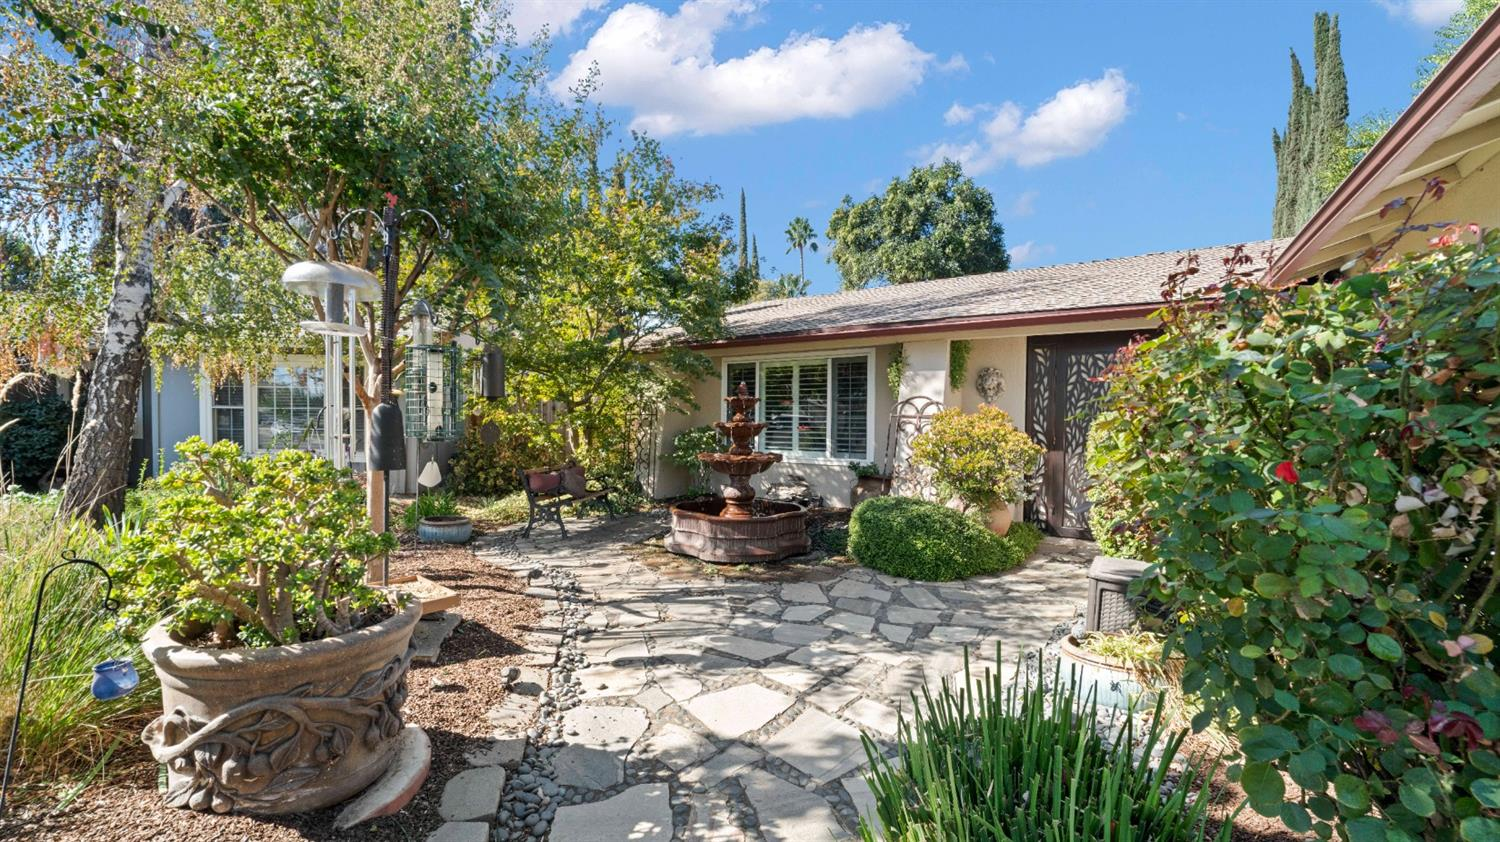 This one is a gem and will sell fast! Remodeled in 2014 with custom kitchen, granite countertops, an